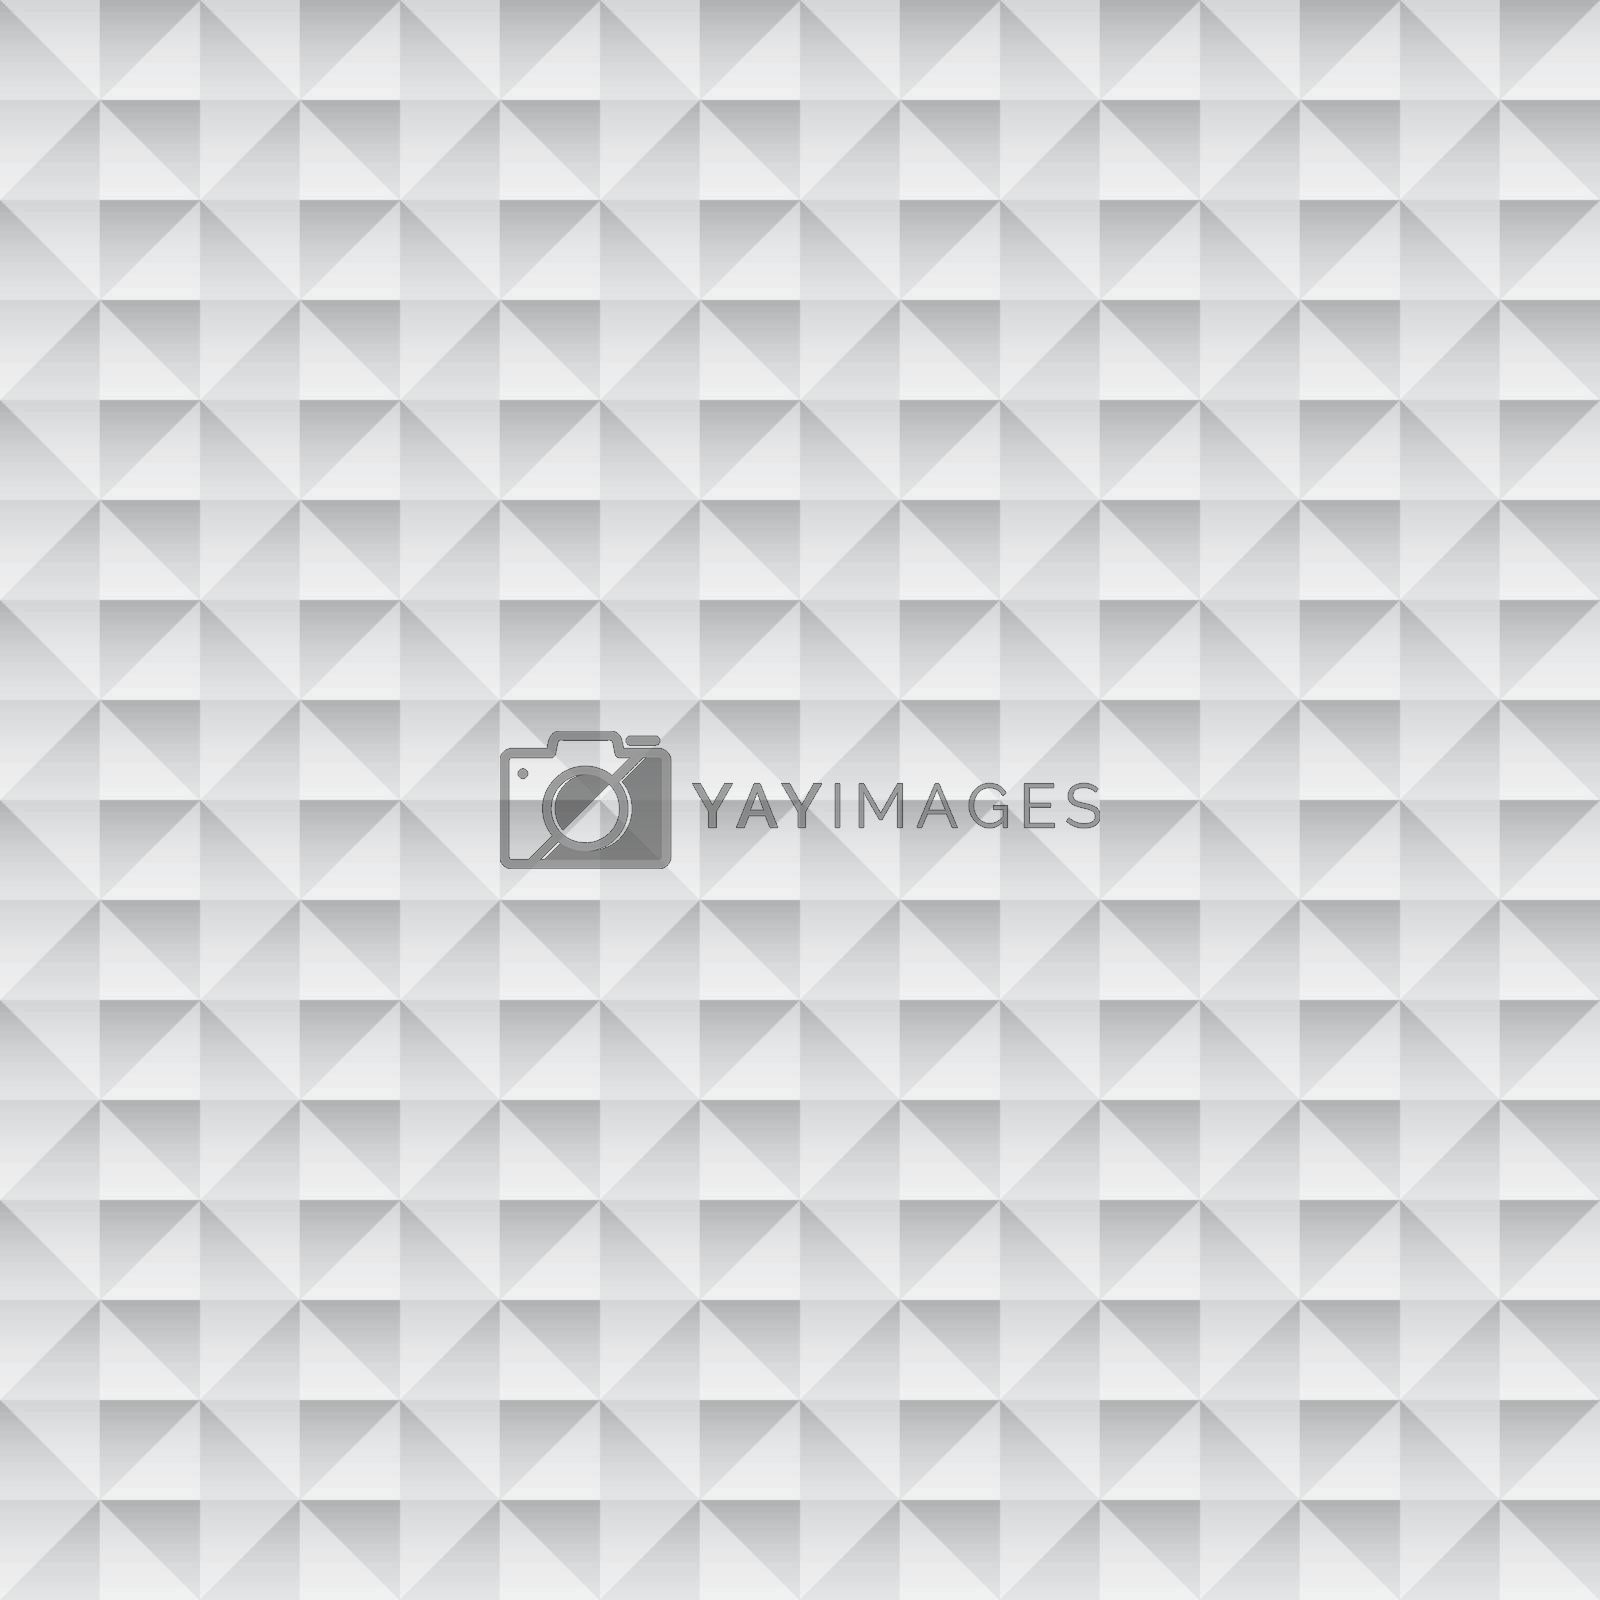 Royalty free image of abstract vector seamless wallpaper by pzRomashka